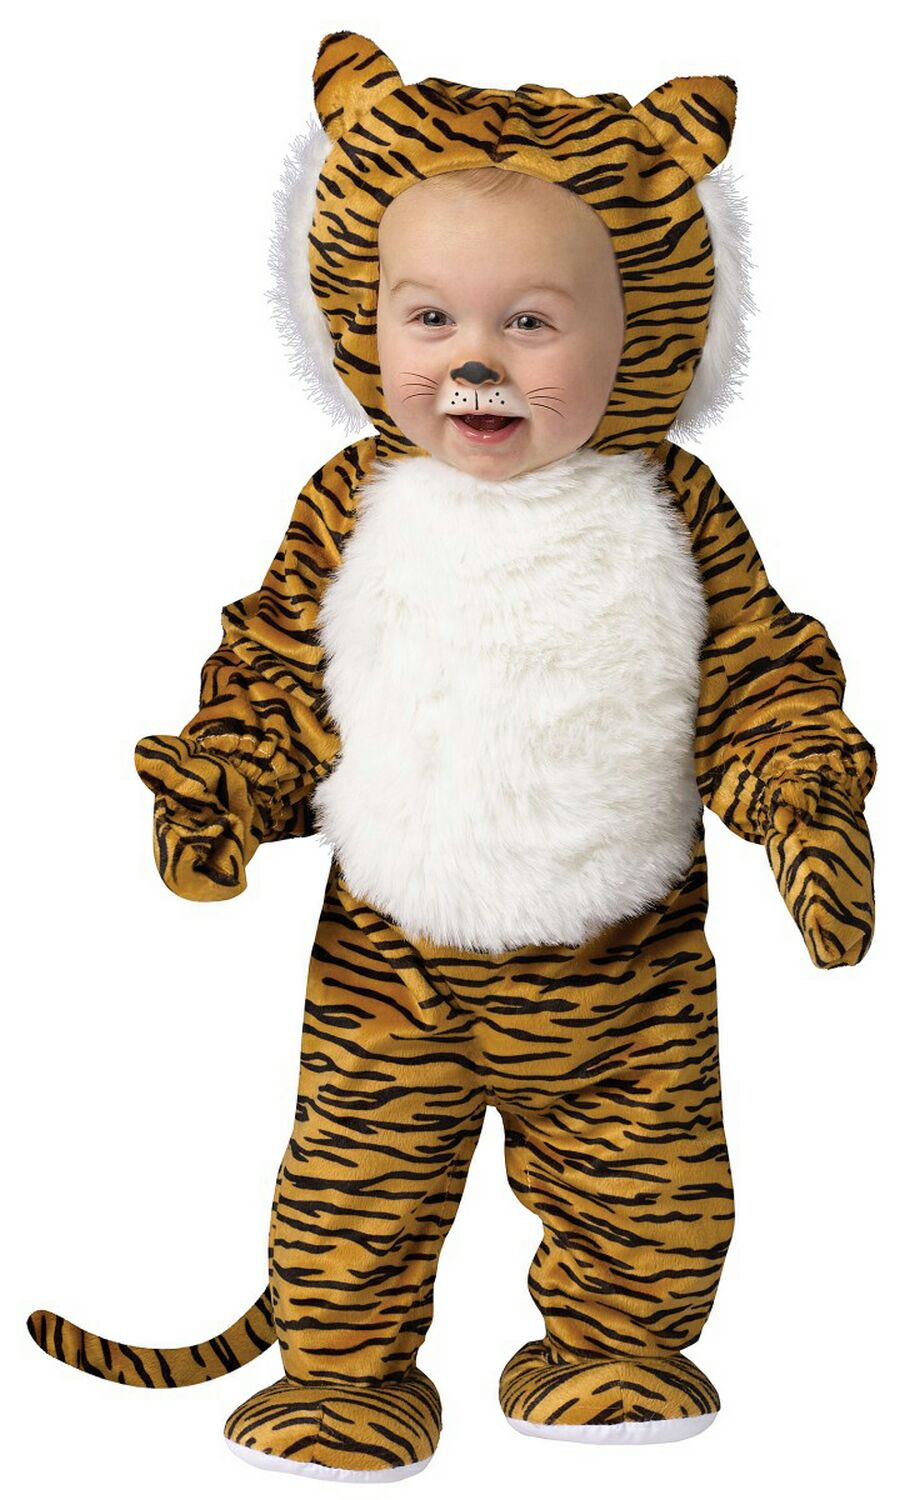 cuddly-tiger-costume 5 Most Wanted Halloween Beanie Babies Costumes & What To Consider